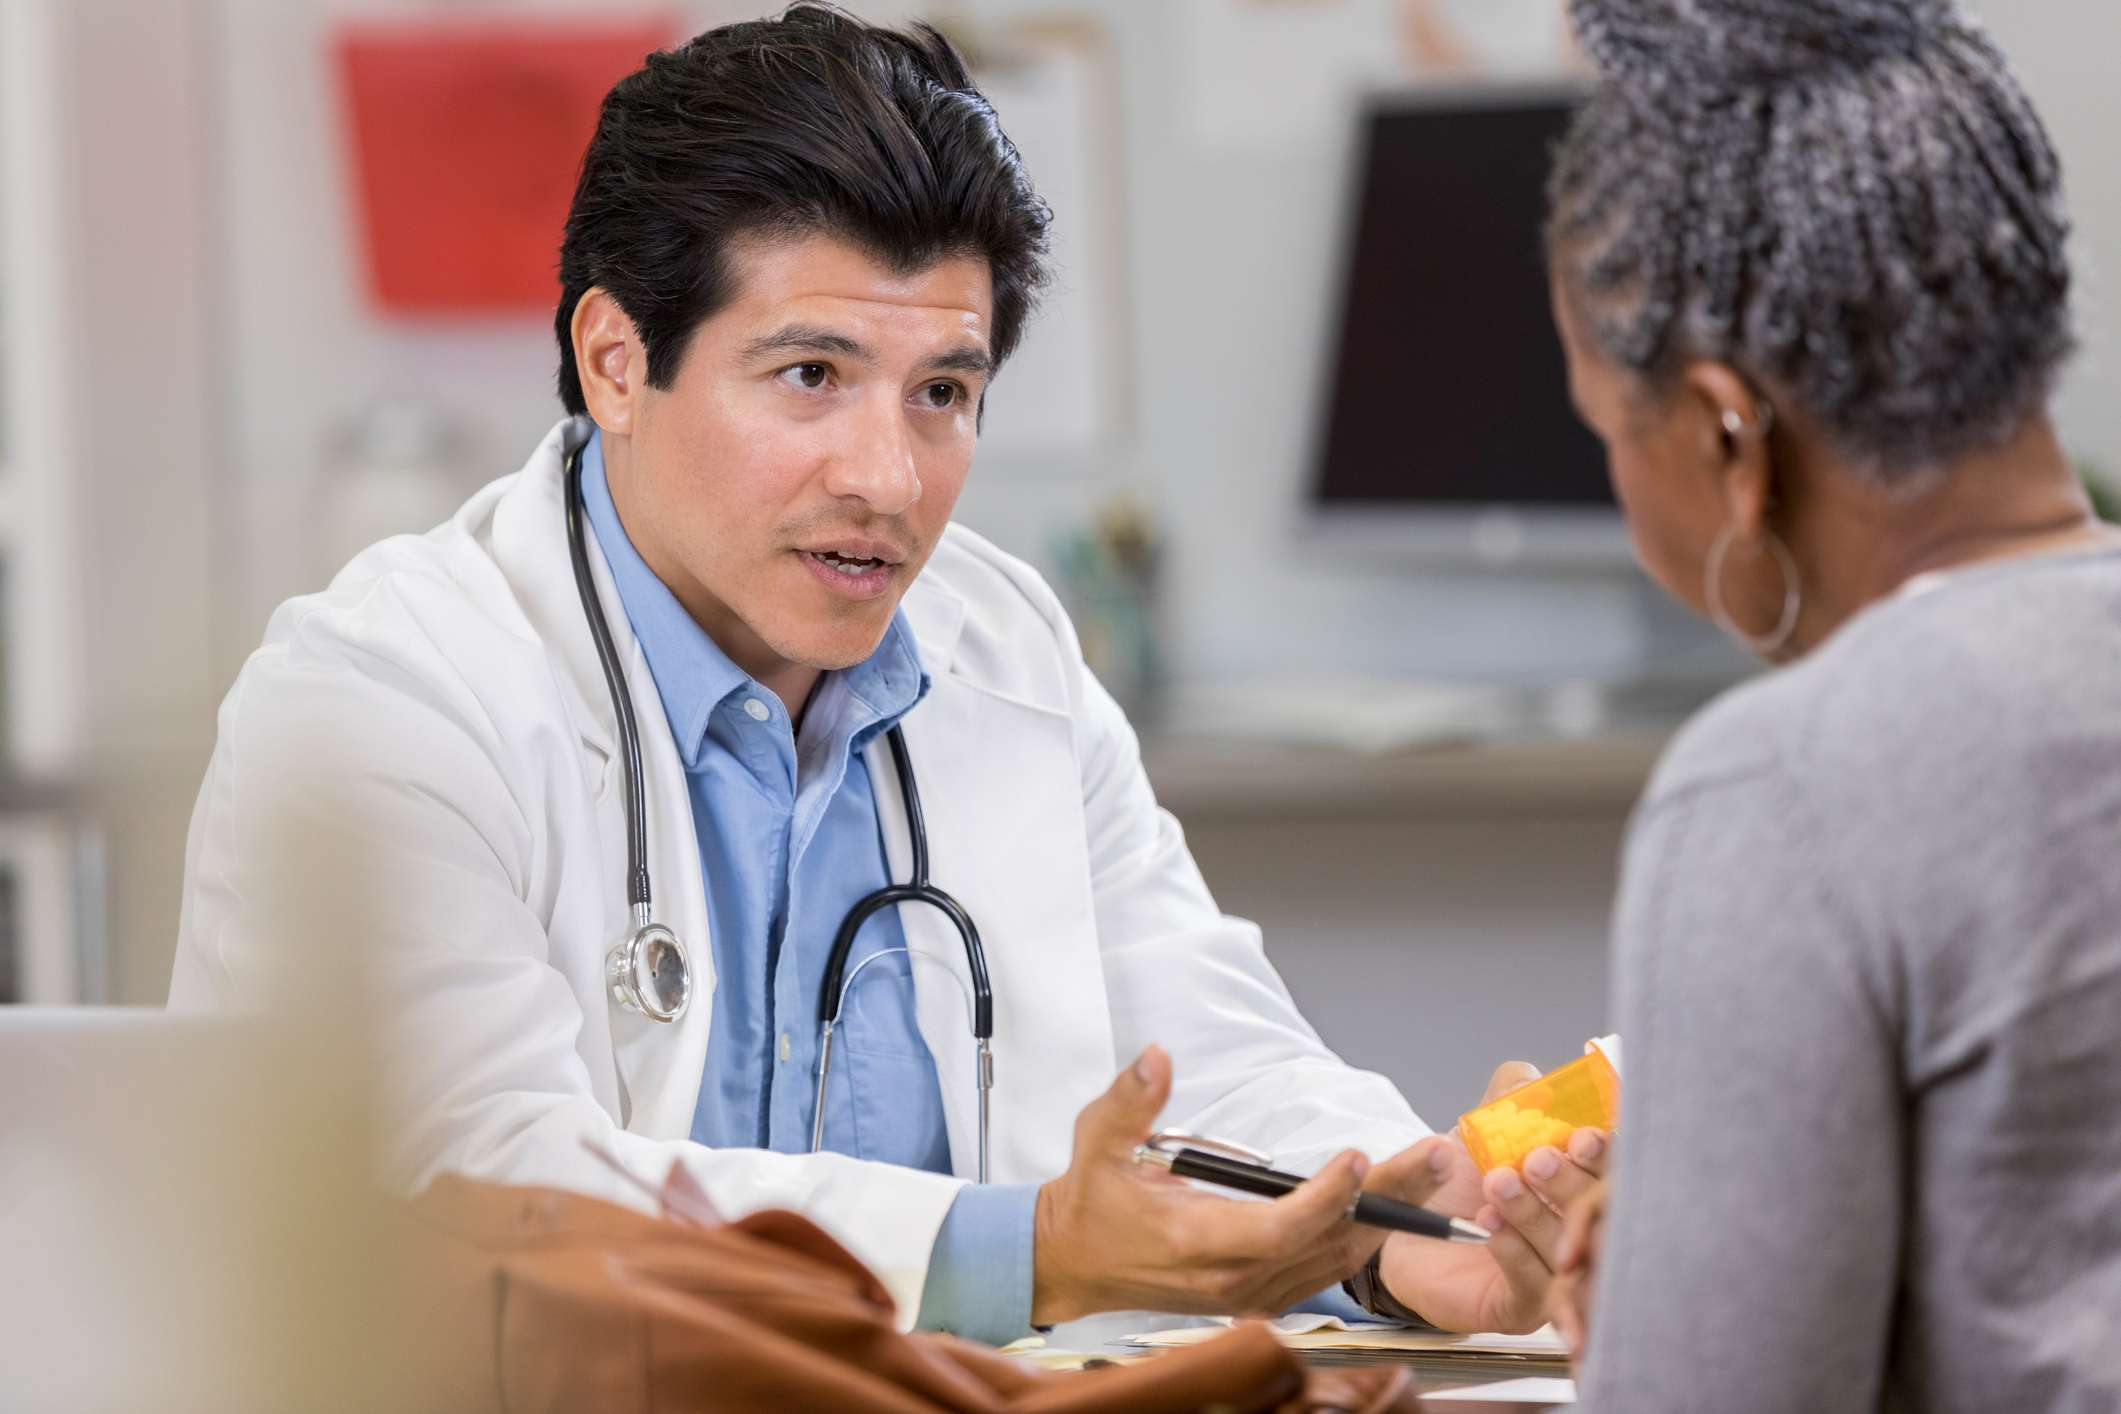 Confident doctor explains new medication to patient